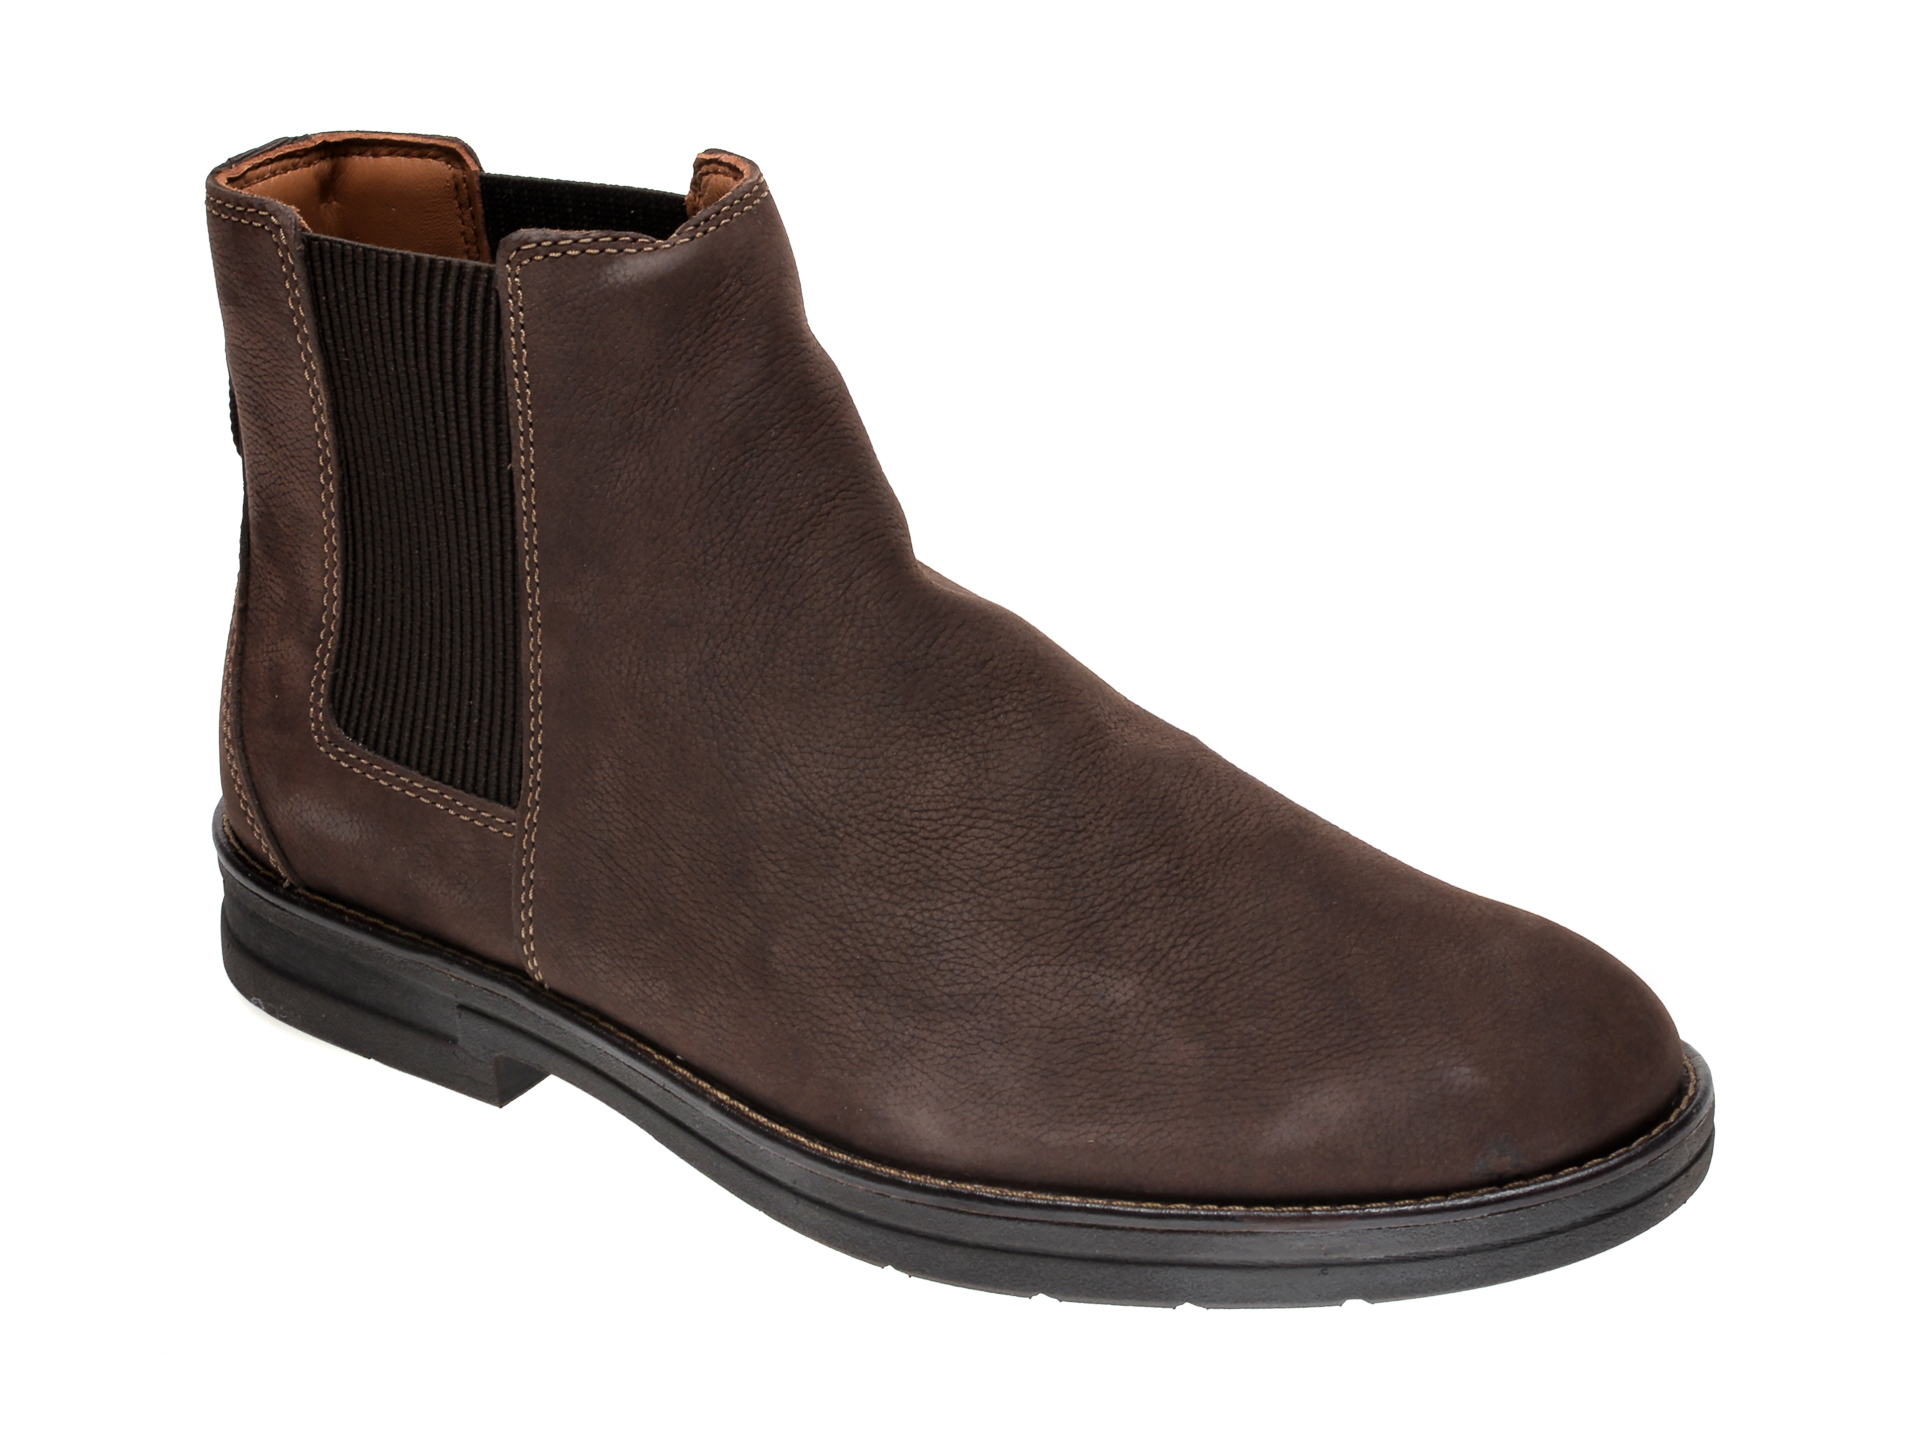 Ghete CLARKS maro, BANNING LIMIT, din nabuc imagine